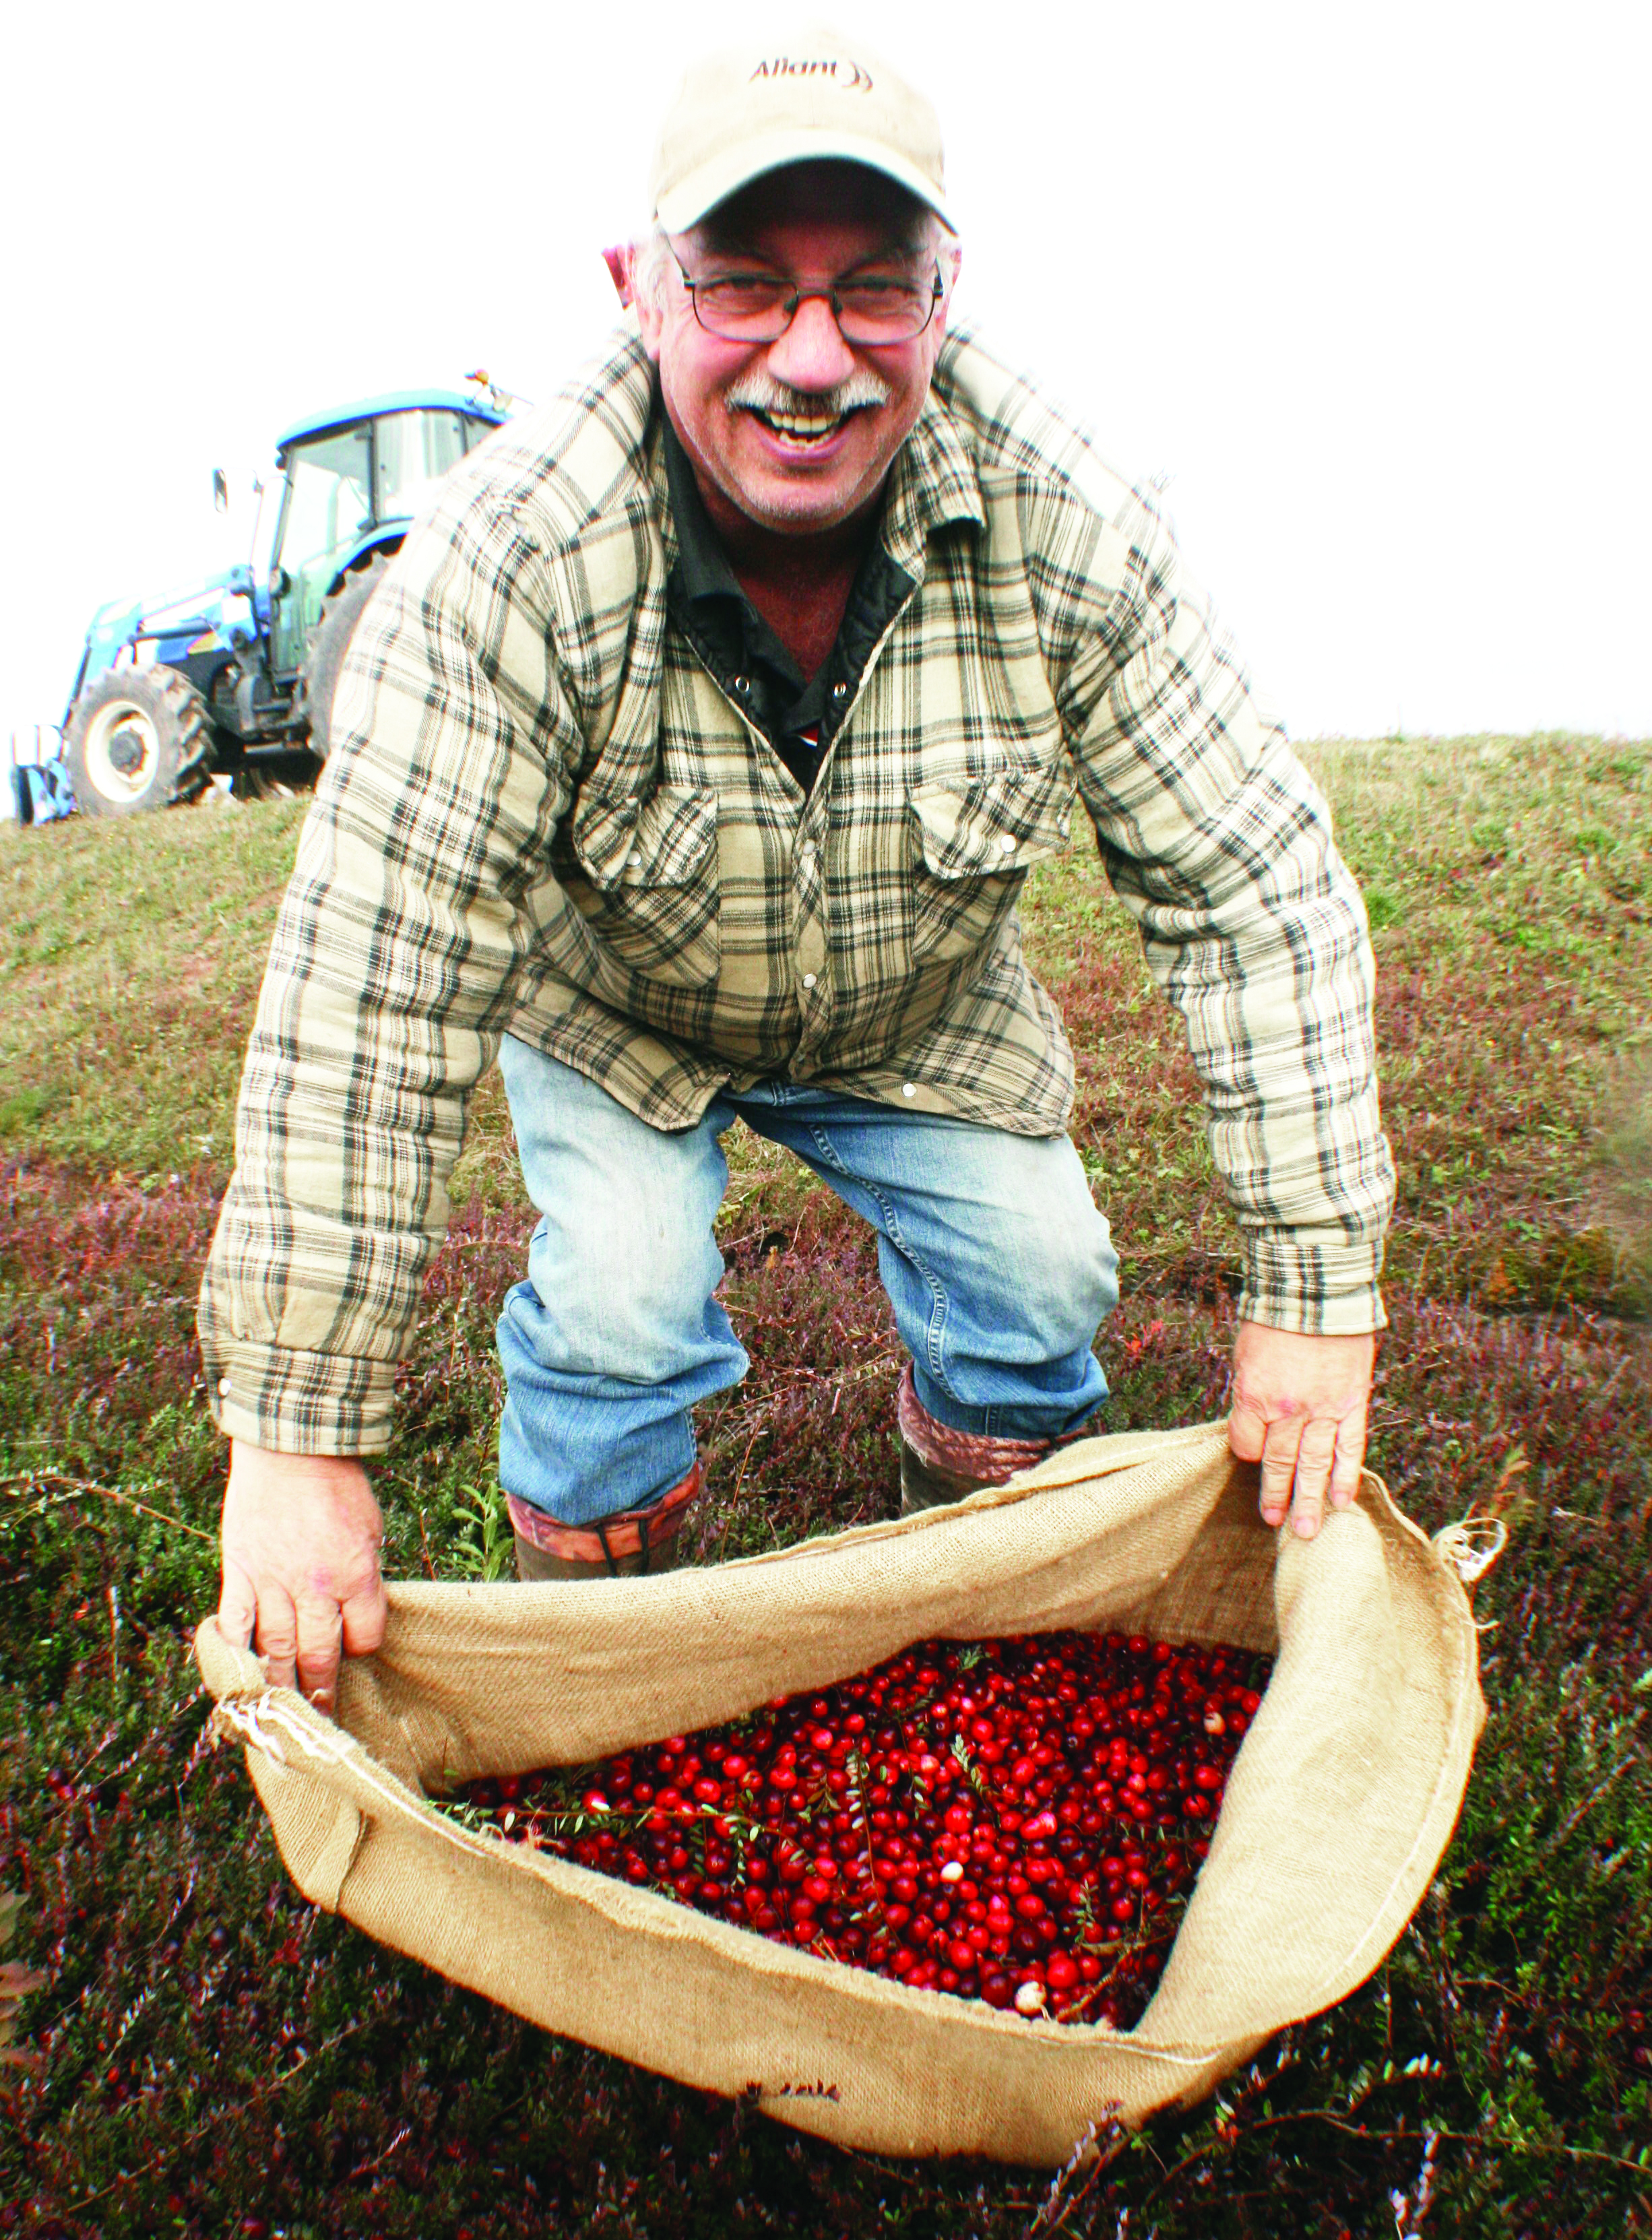 Melvin Goodland with a burlap bag full of bright red cranberries. The cranberries are harvested with self-propelled machines, with large burlap bags placed on the back of the machines to catch the berries. (Joan LeBlanc photos)